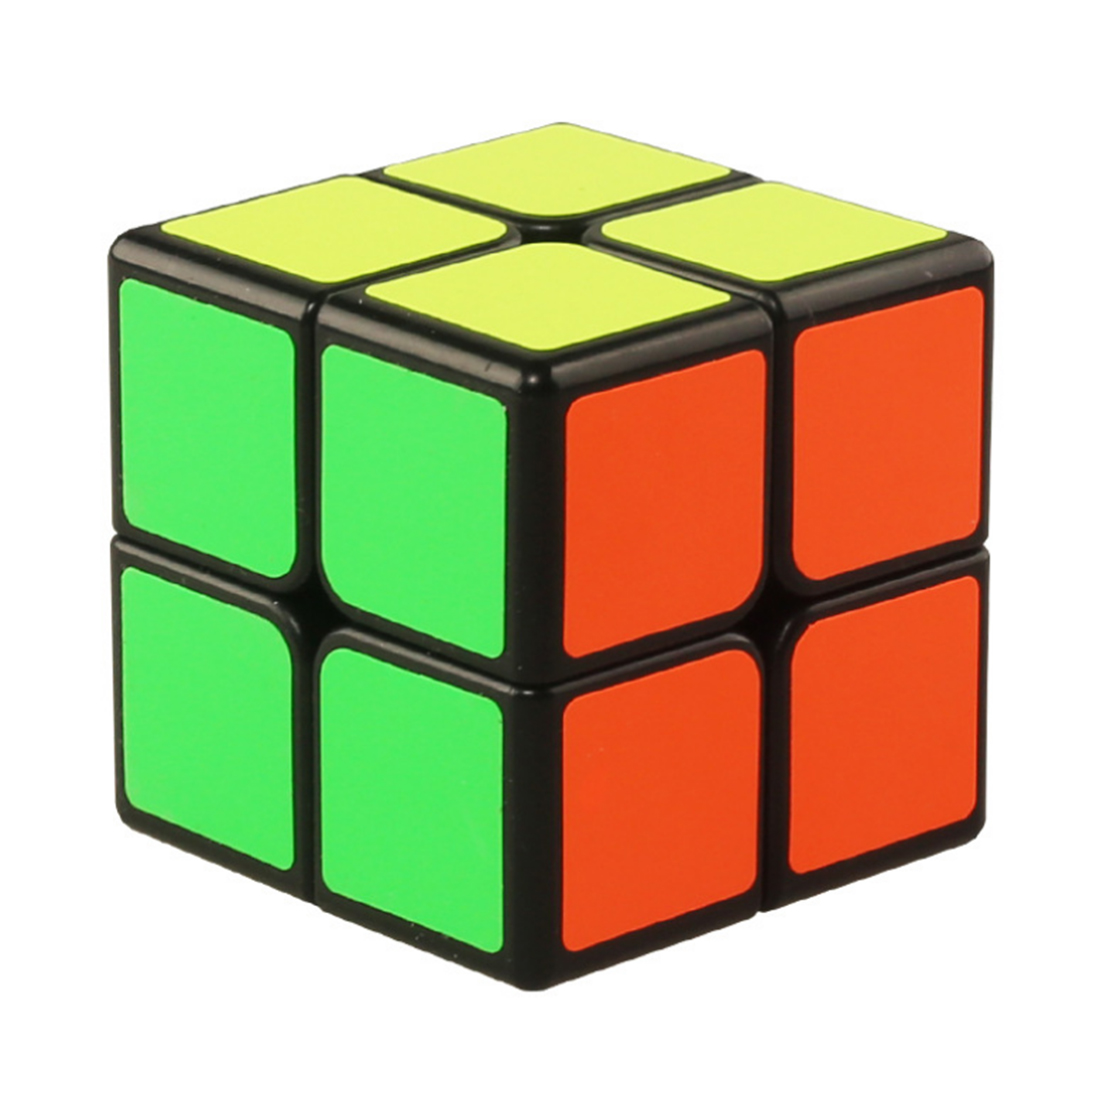 Shengshou Legend 2x2 Magic Cube Puzzle Toy for Competition Challenge aigo золотой 32gb